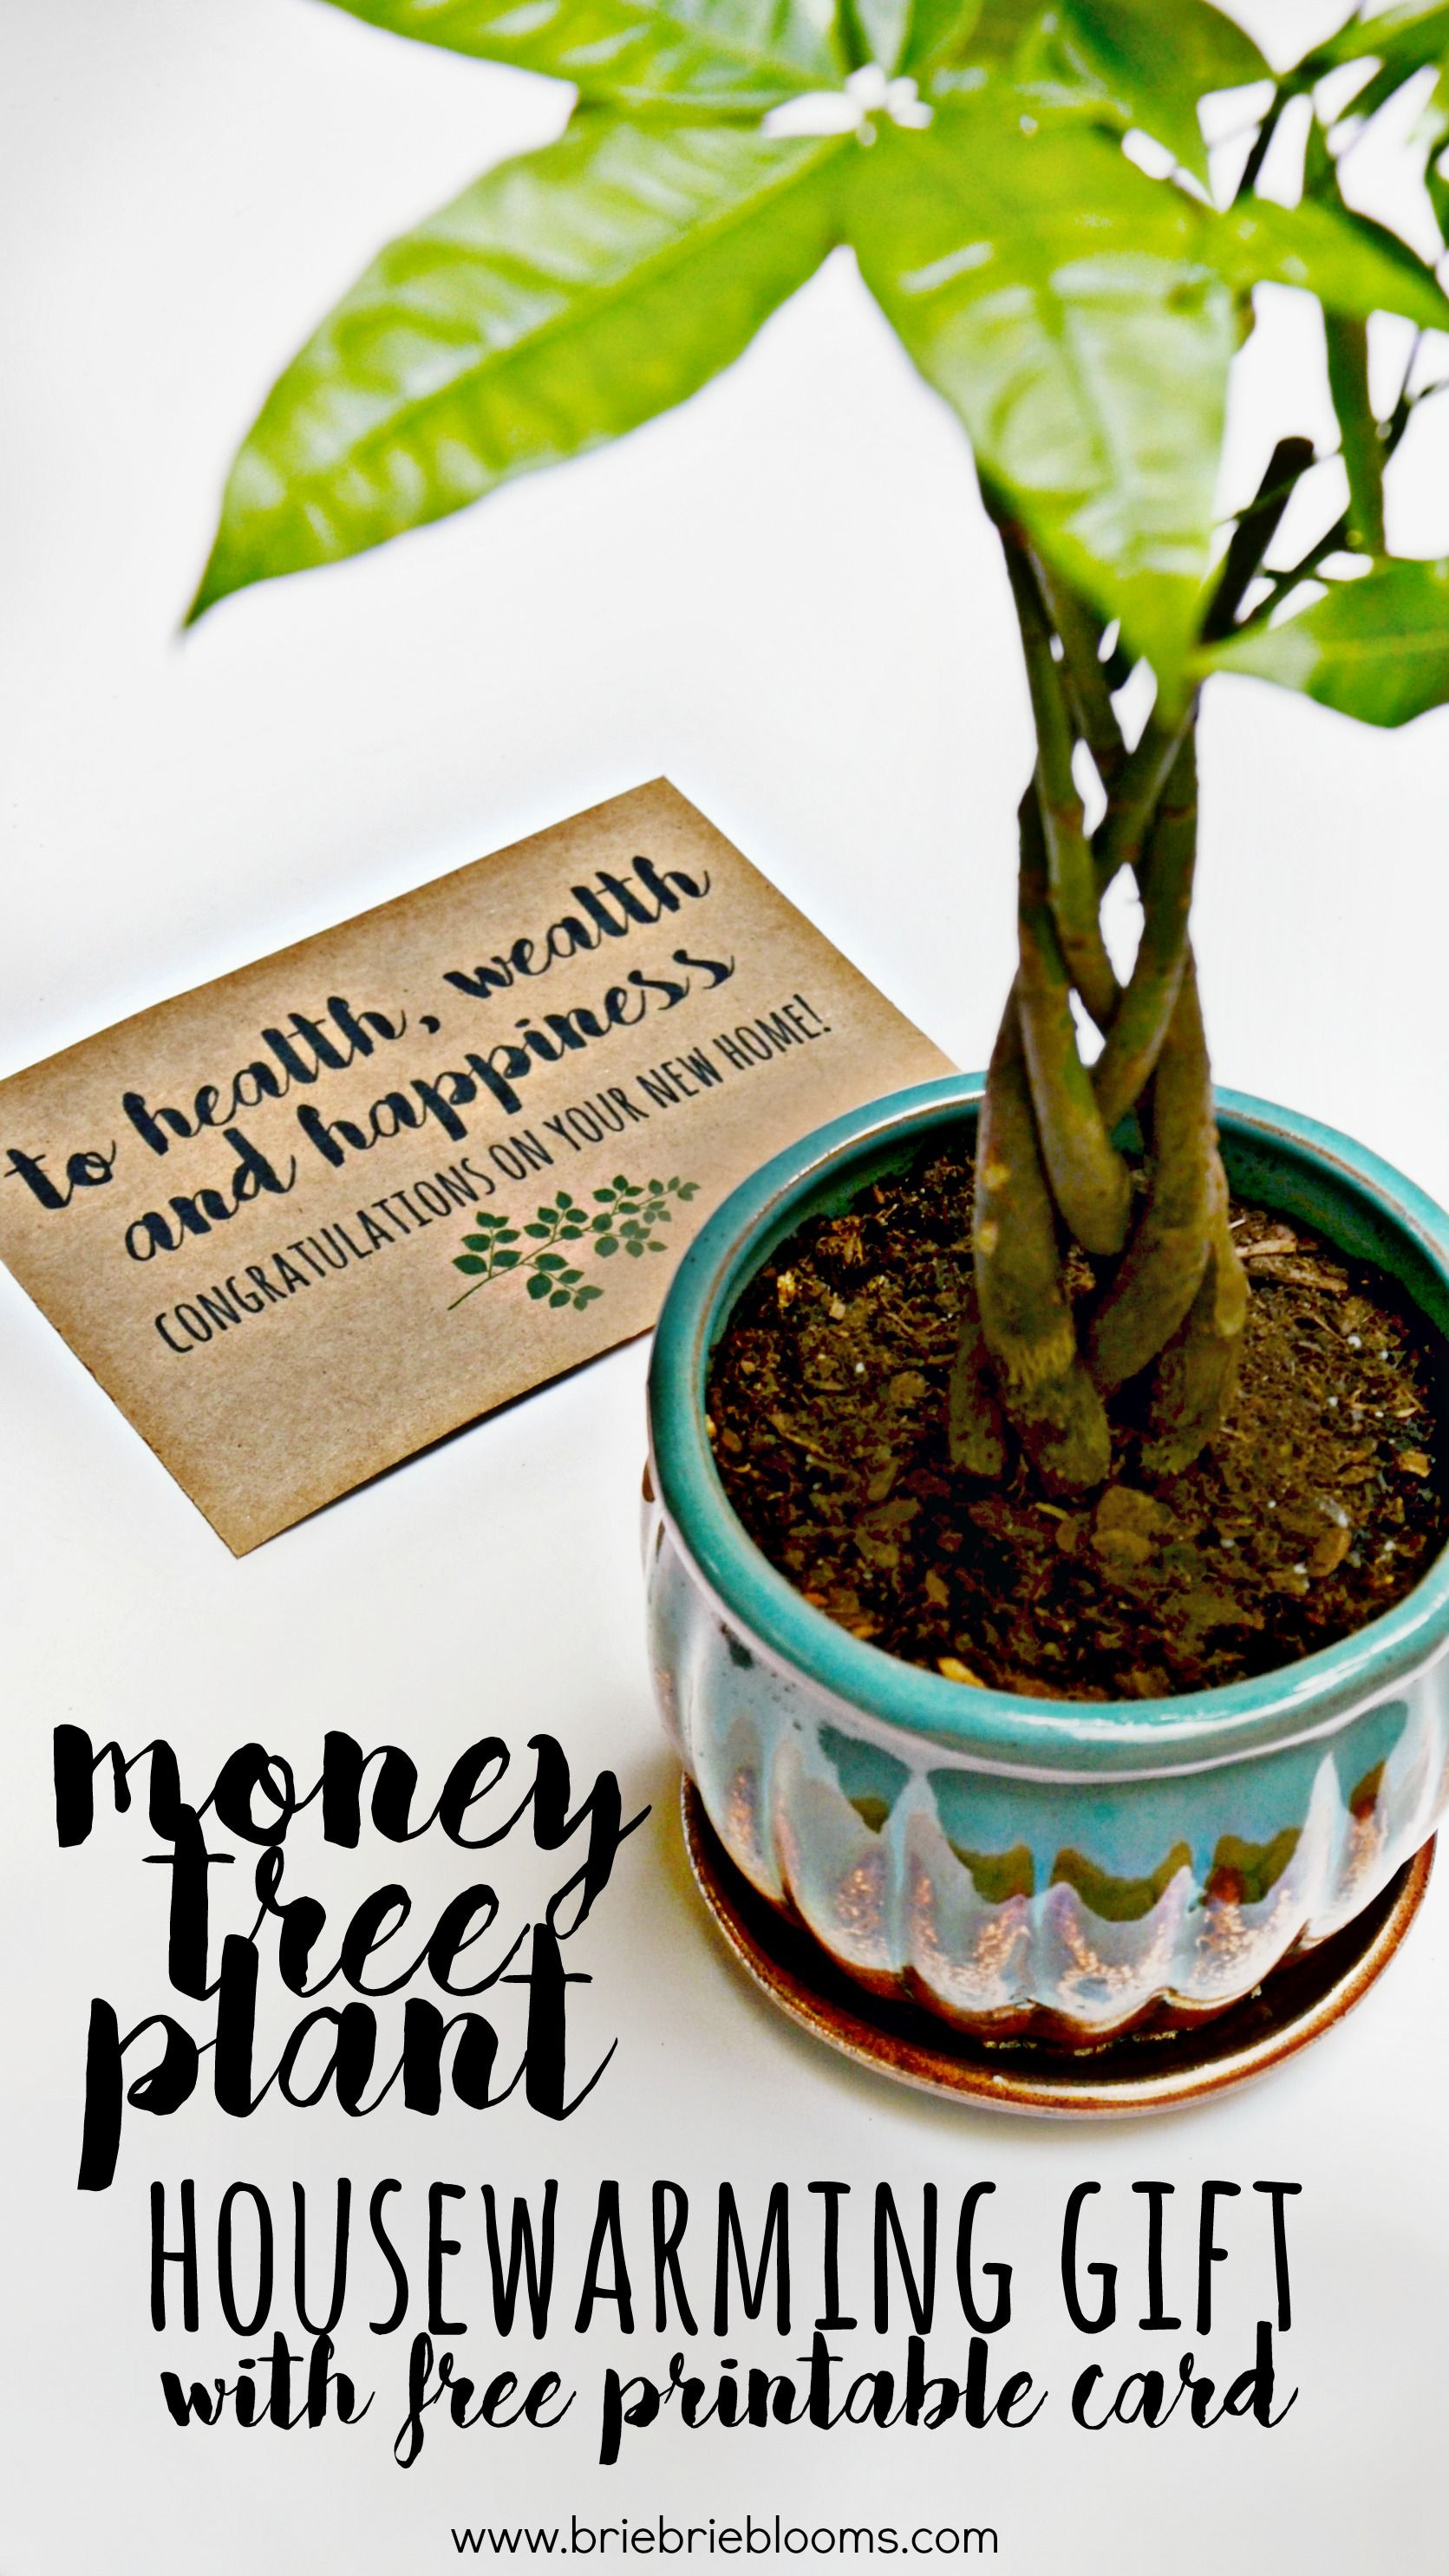 Money Tree Plant Housewarming Gift Brie Brie Blooms Money Tree